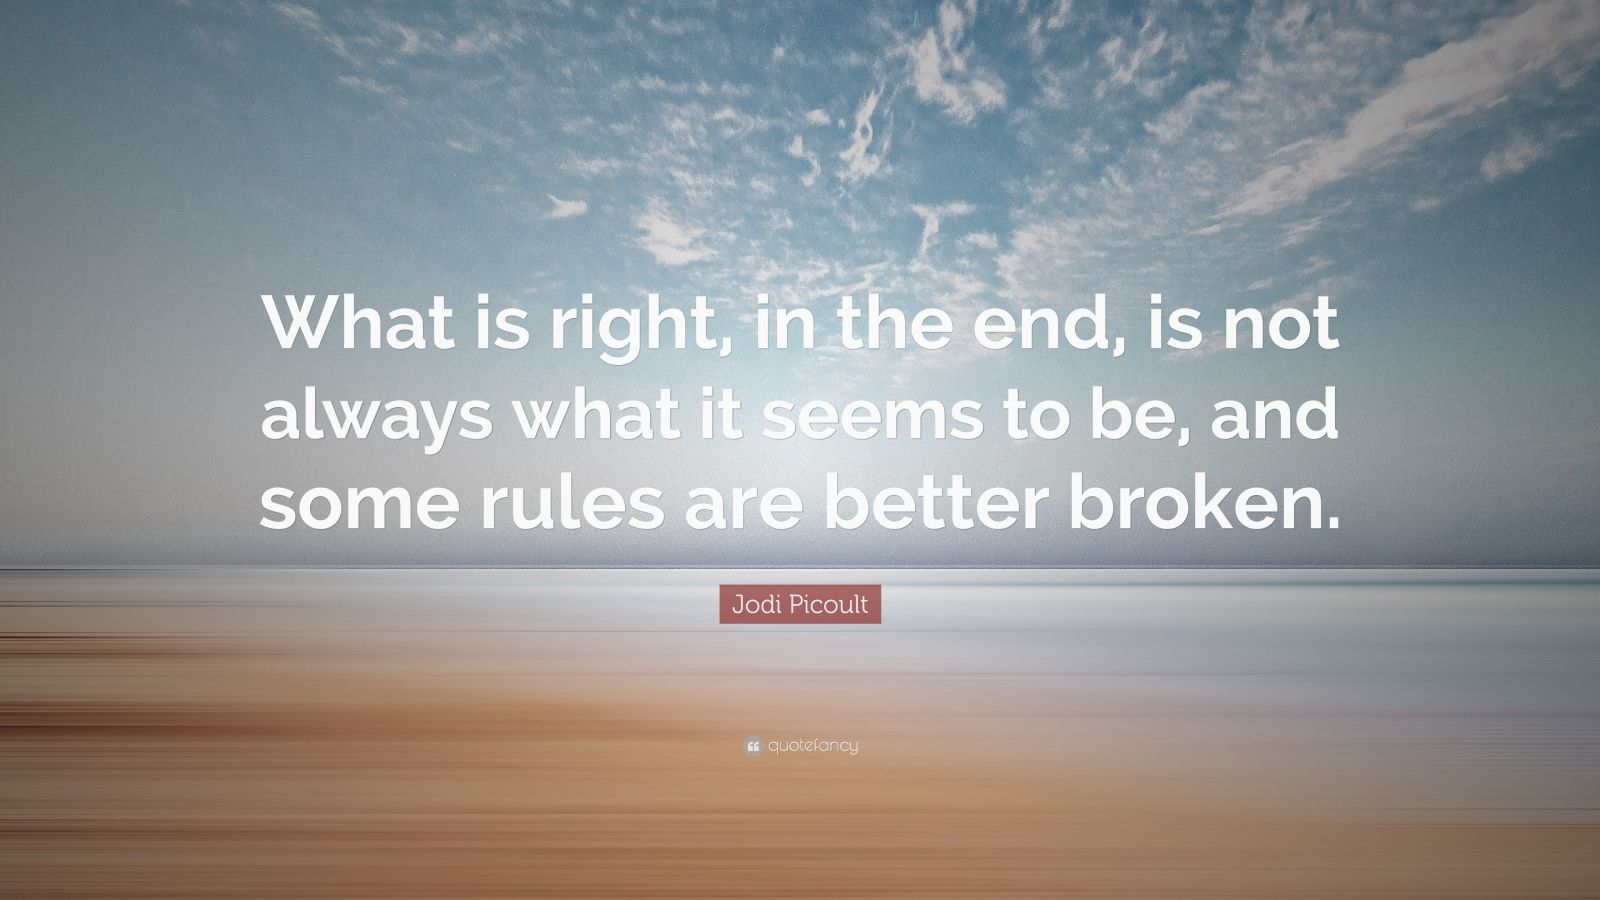 """Jodi Picoult Quote: """"What is right, in the end, is not always what it seems to be, and some rules are better broken."""""""